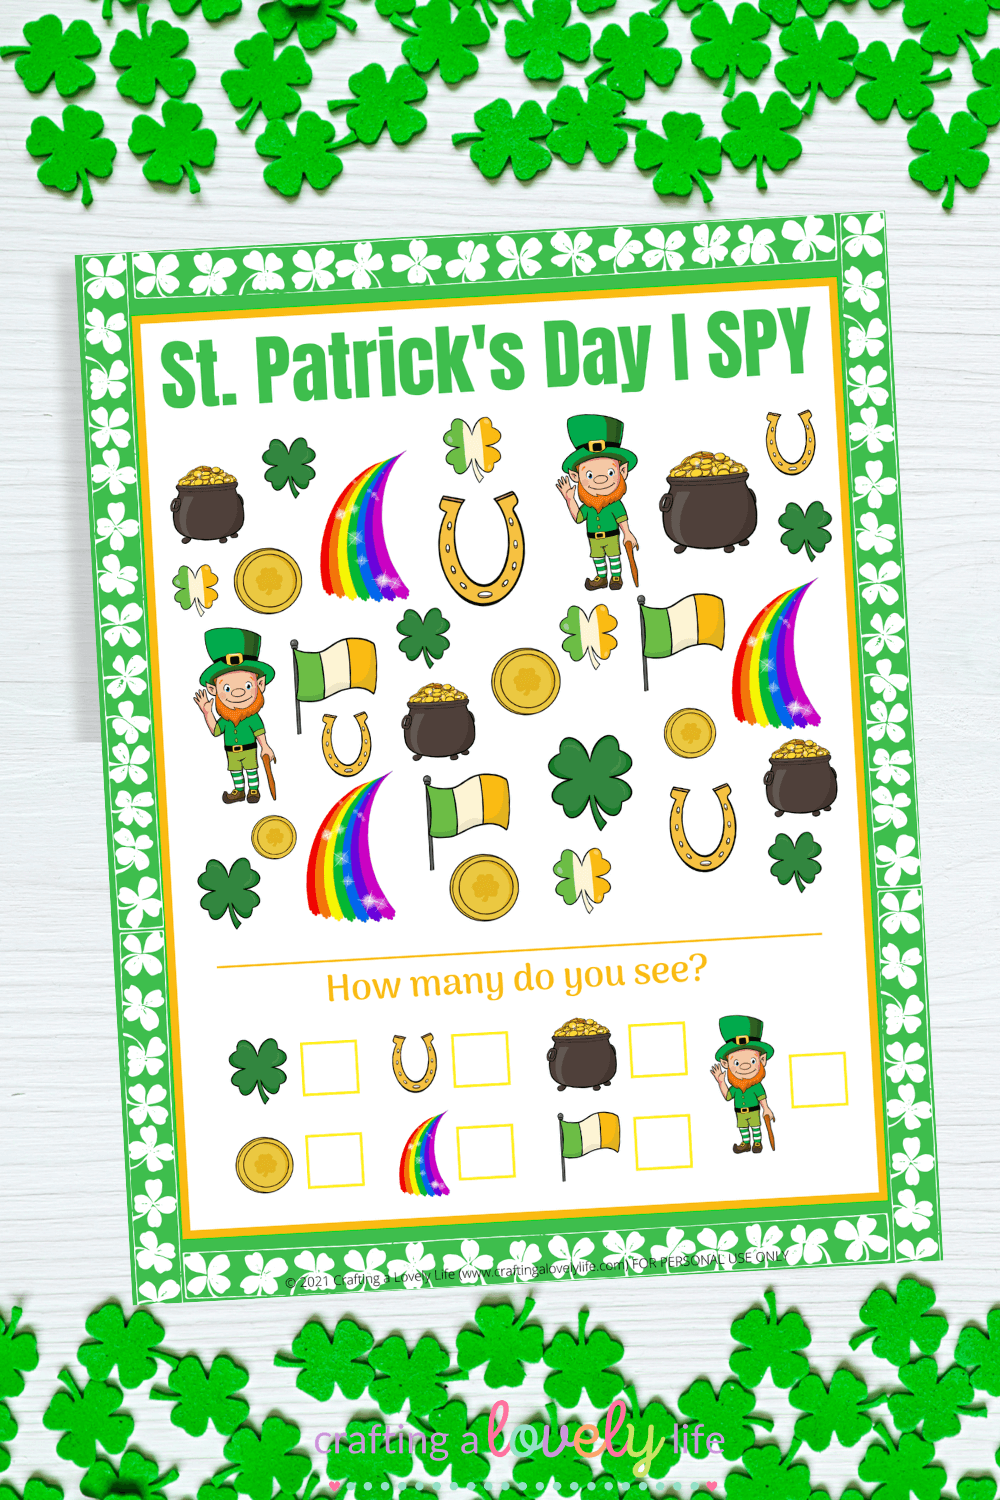 St. Patrick's Day I Spy Free Printable